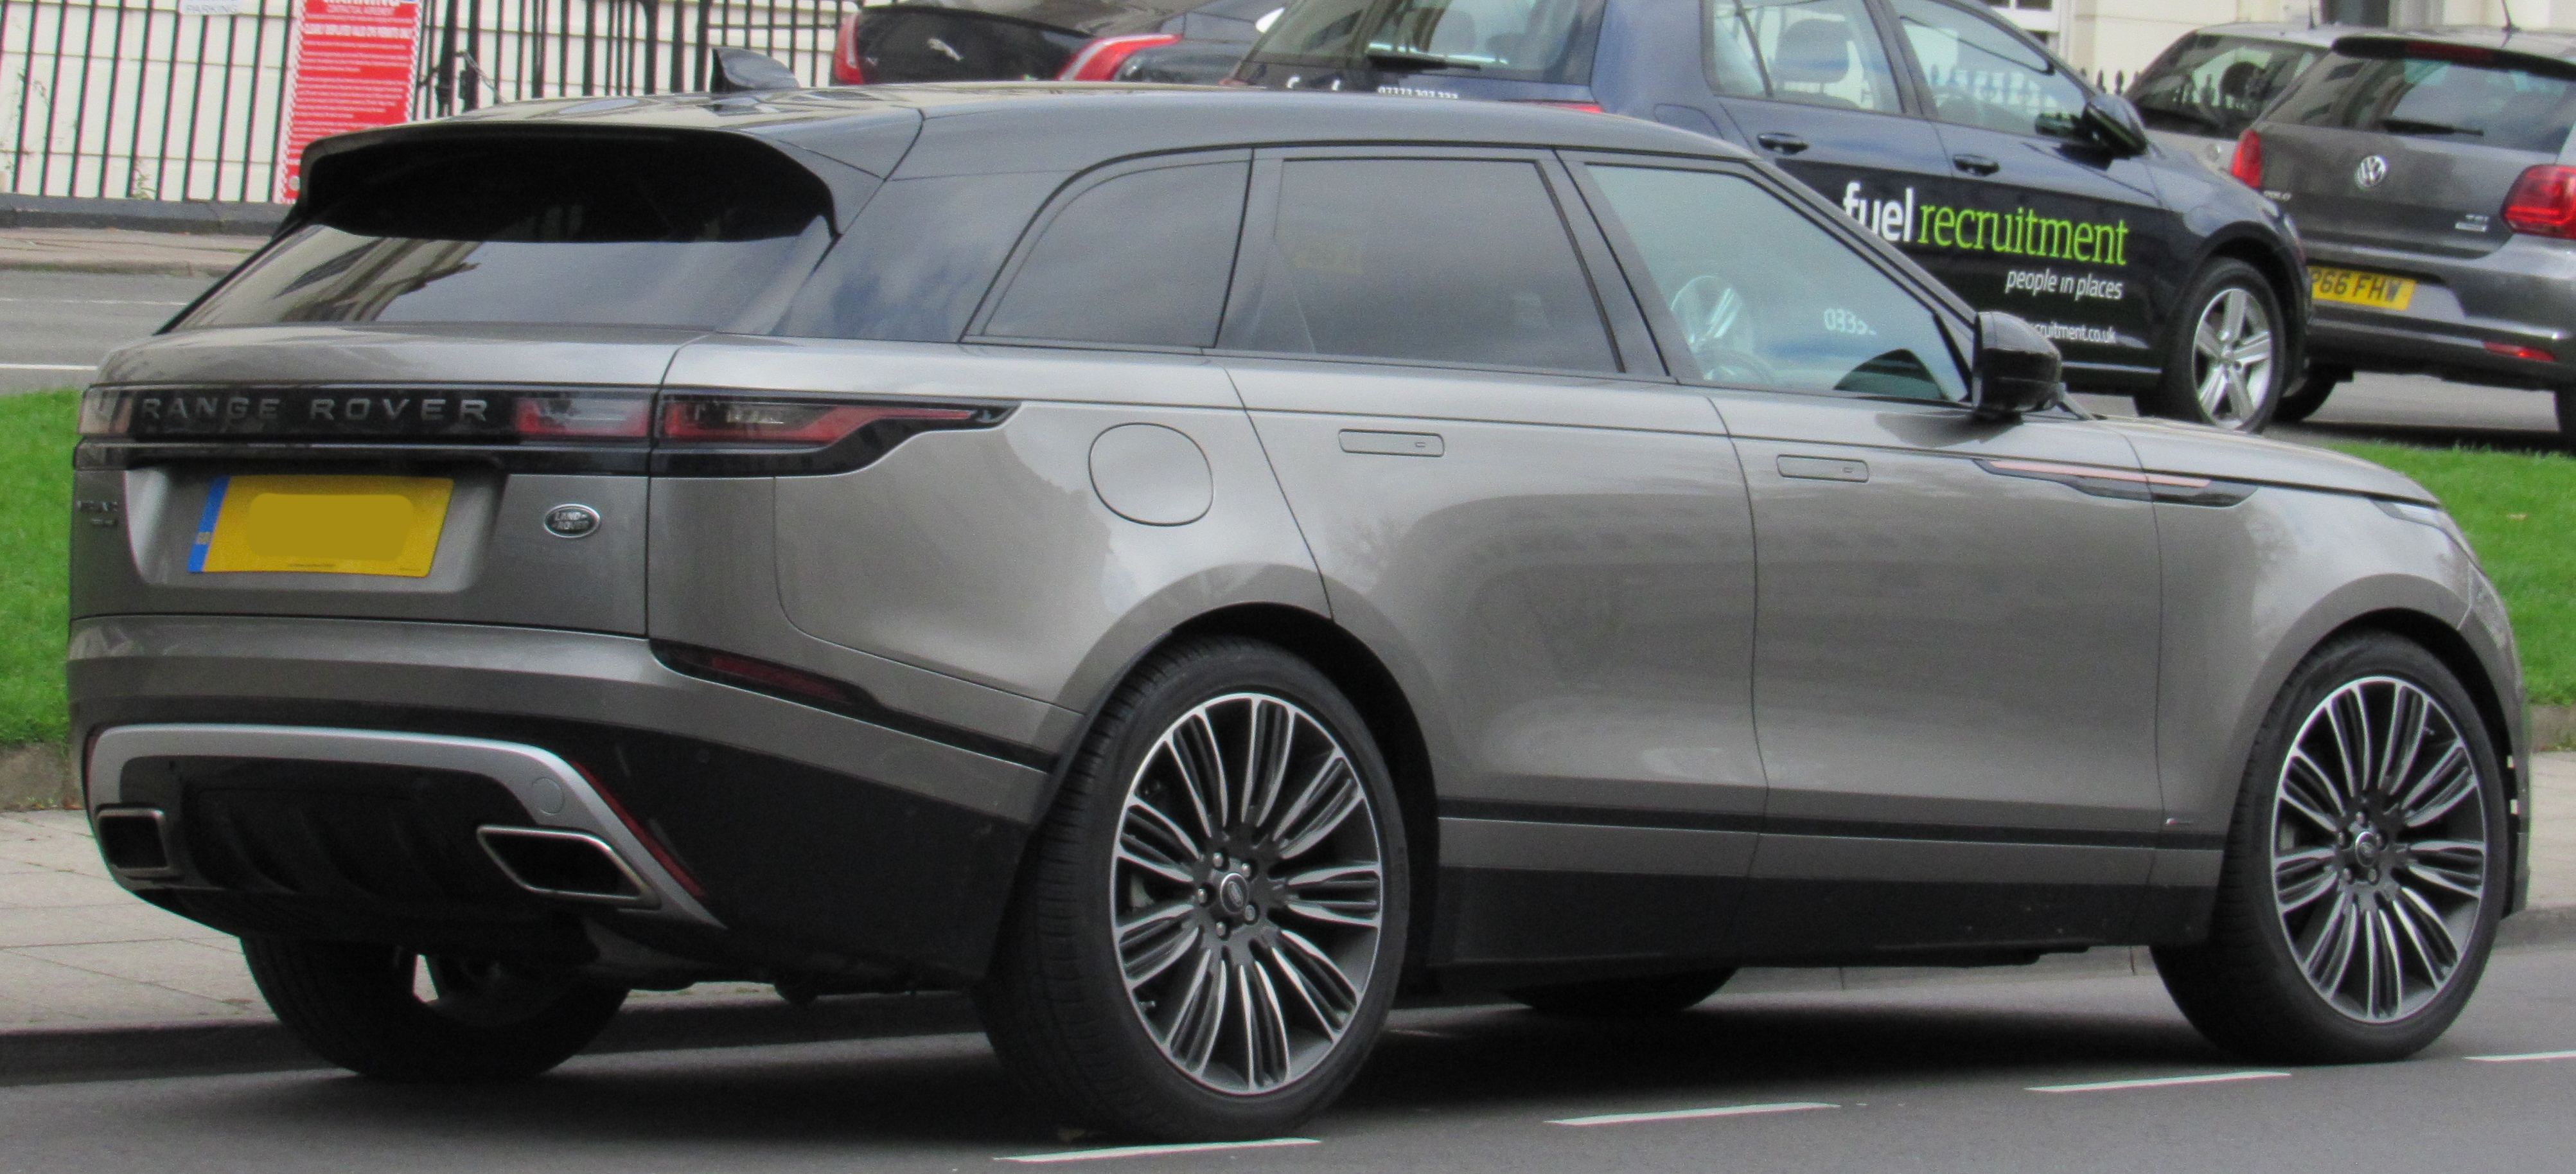 New Range Rover >> File:2017 Land Rover Range Rover Velar First Edition D3 3.0 Rear.jpg - Wikipedia